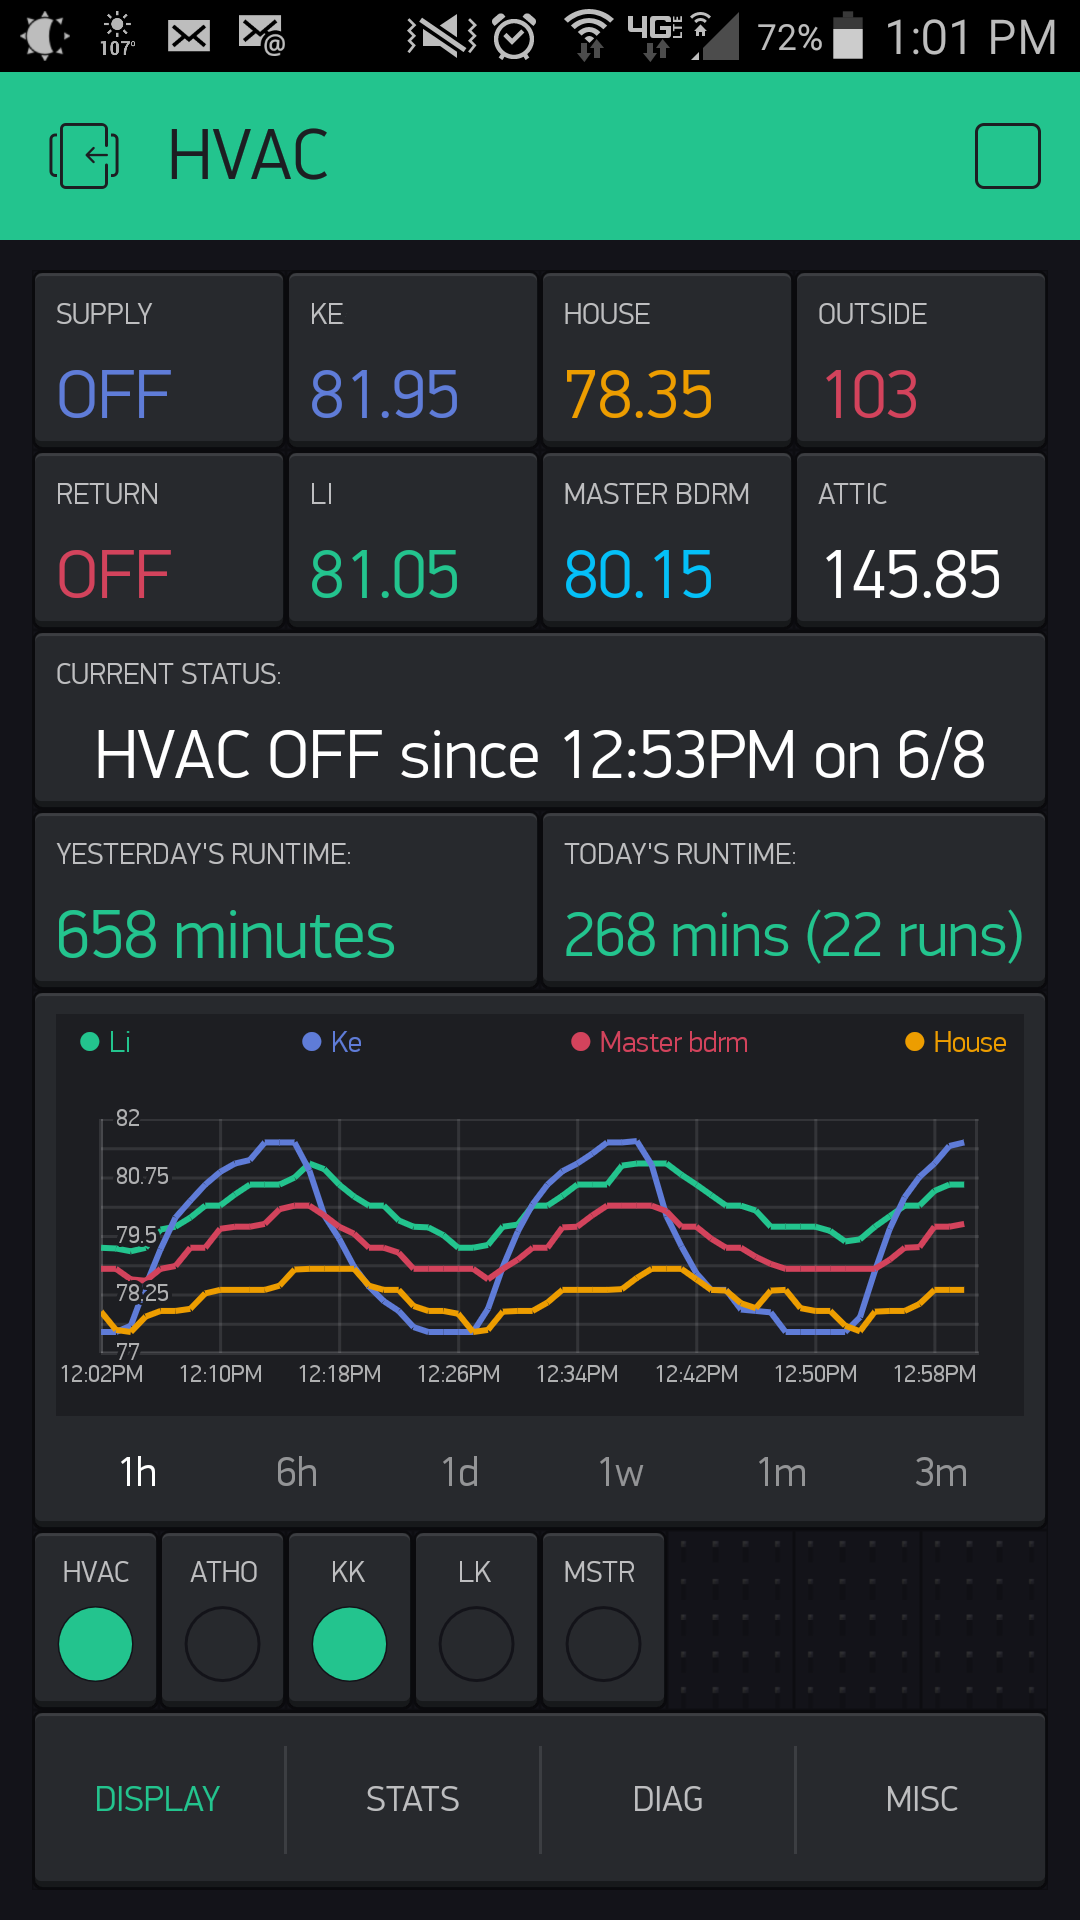 Another contribution to the Blynk IoT an HVAC control for